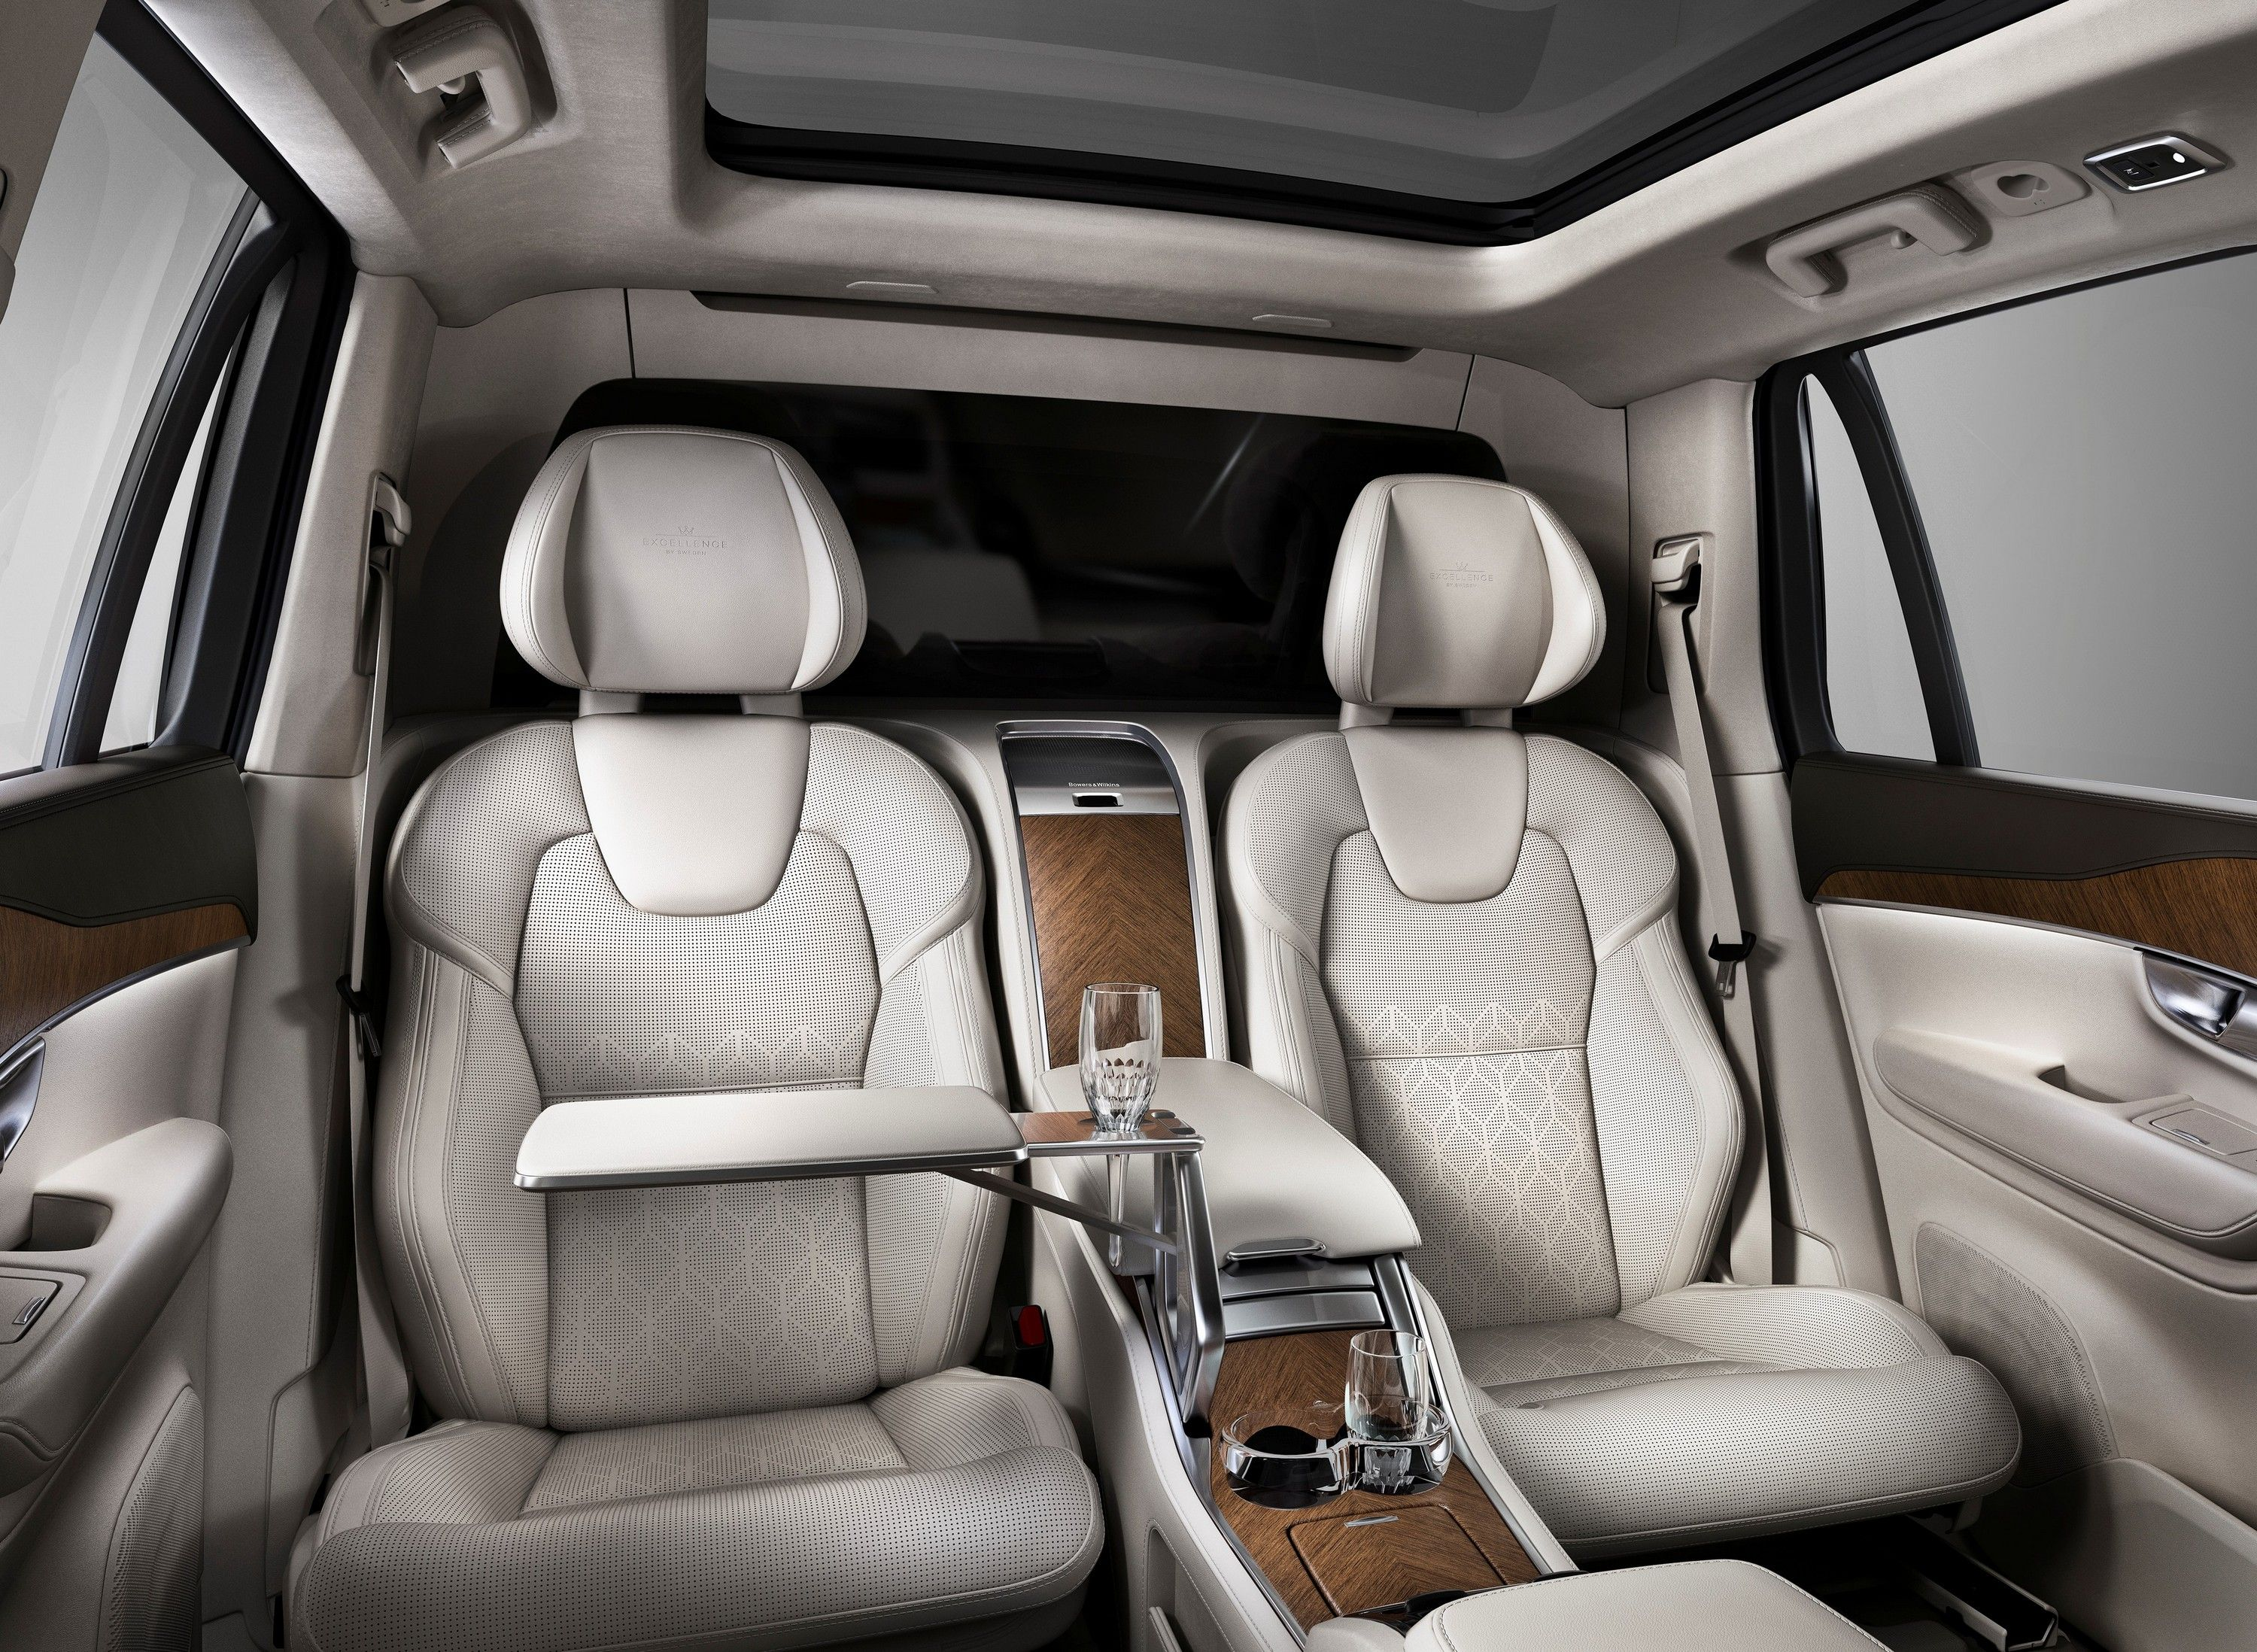 Volvo Xc90 Interior >> Volvo Xc90 Excellence Interior I Ll Take That One